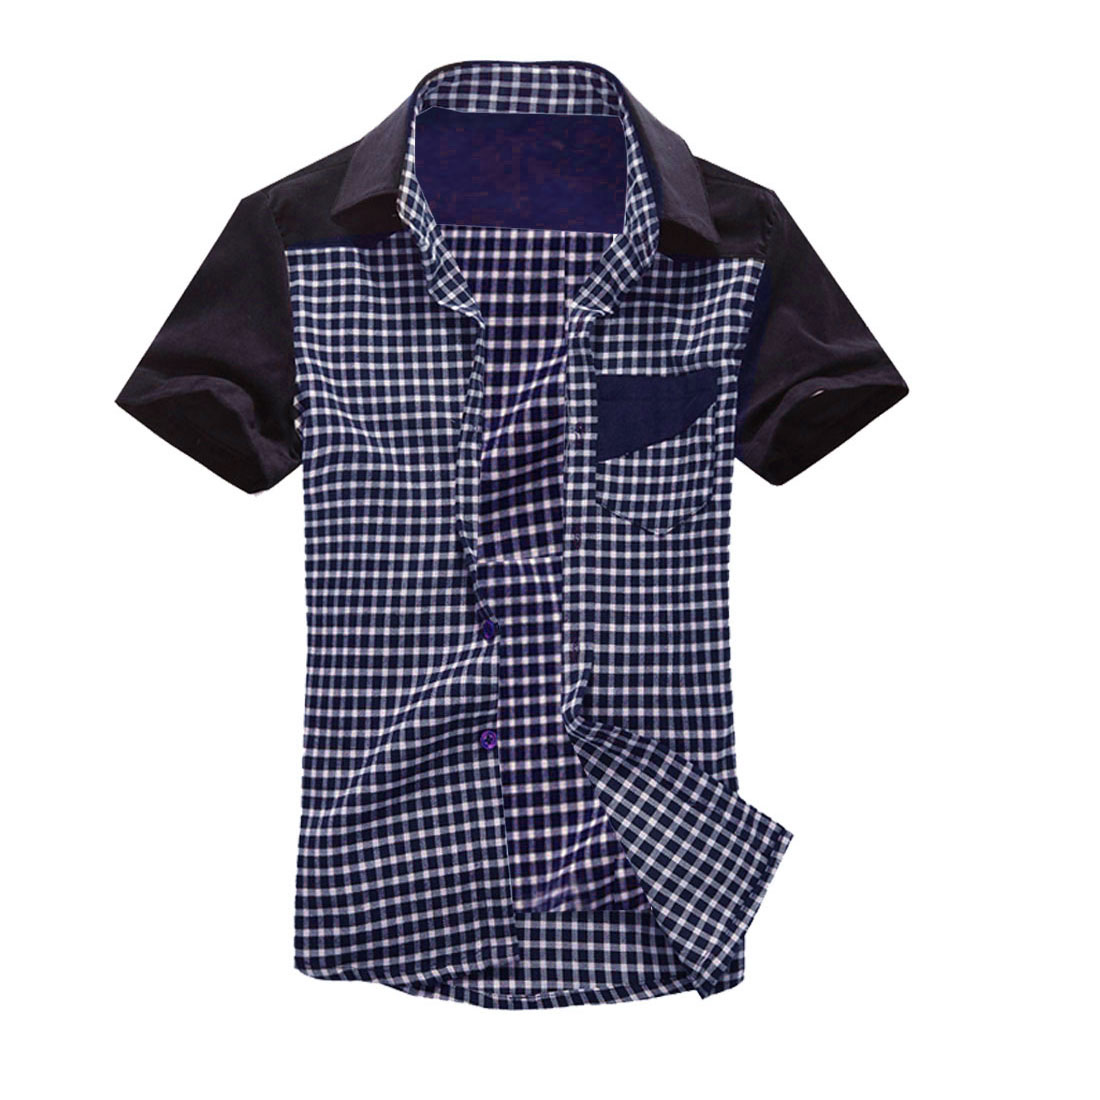 Man Breasted Pockets Plaids Button-Front Shirt Dark Blue M